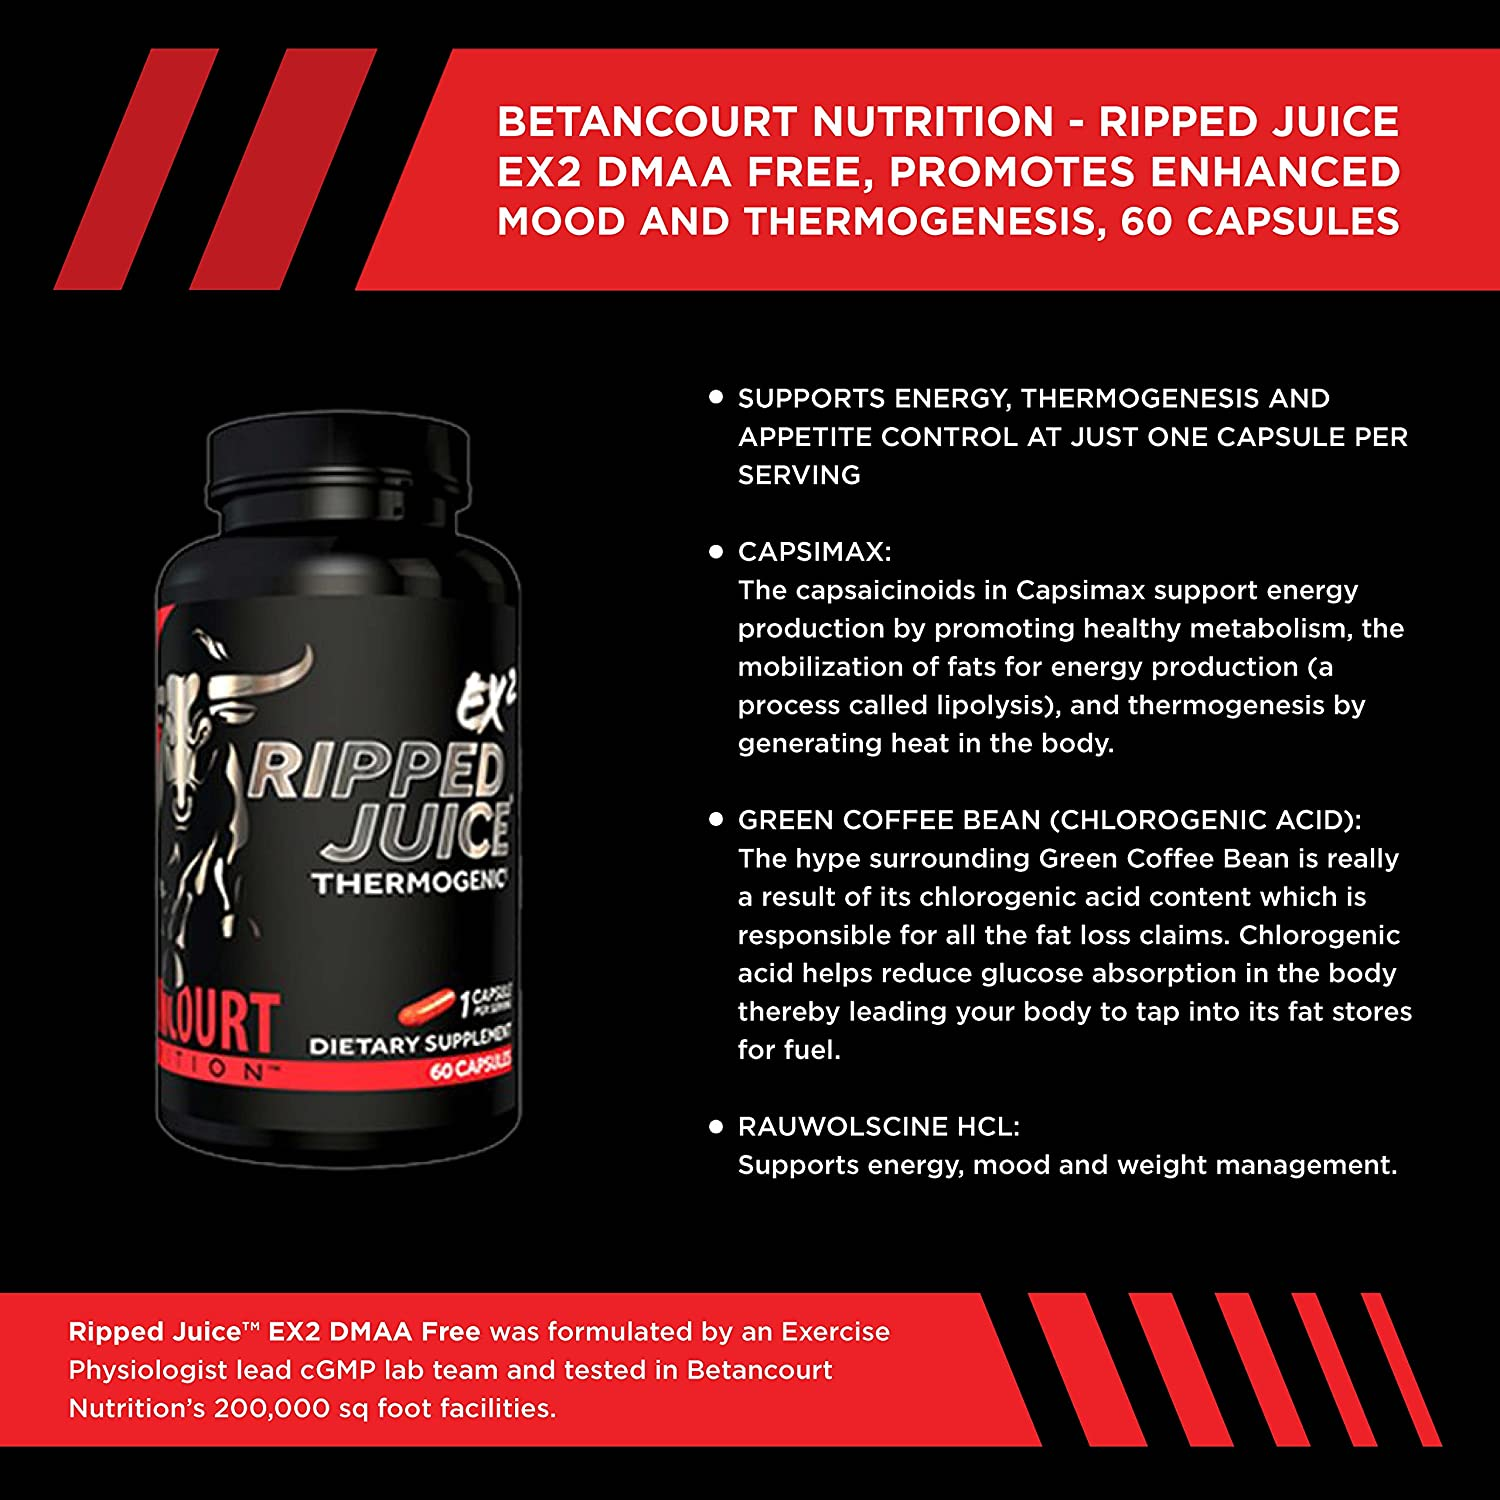 Amazon.com: Betancourt Nutrition Ripped Juice EX2 Thermogenic, 60 Capsules: Health & Personal Care